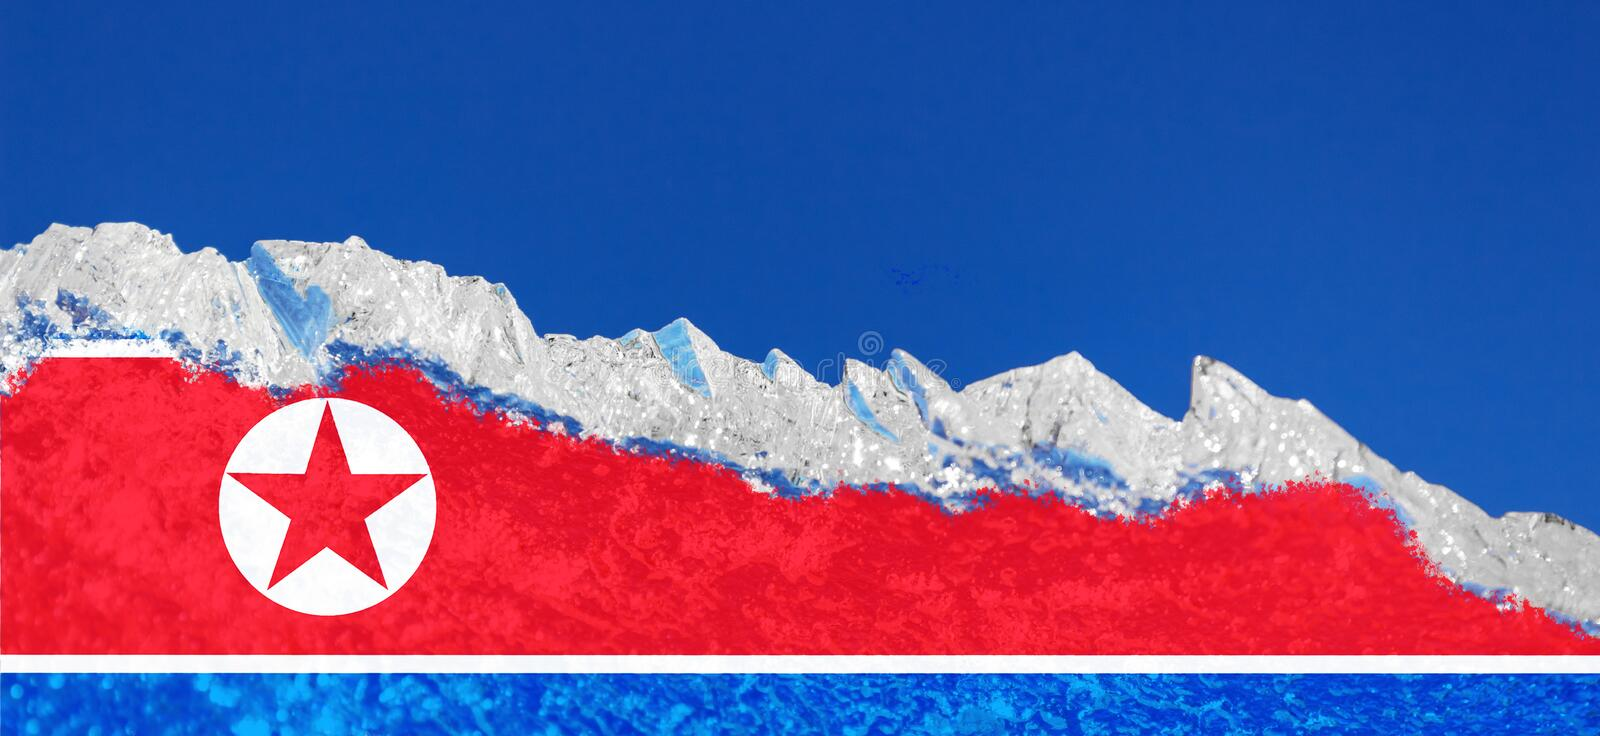 The flag of North Korea is painted on piece of ice in the form of an arctic iceberg against a blue sky. Closed policy, cold war. The flag of North Korea is stock image